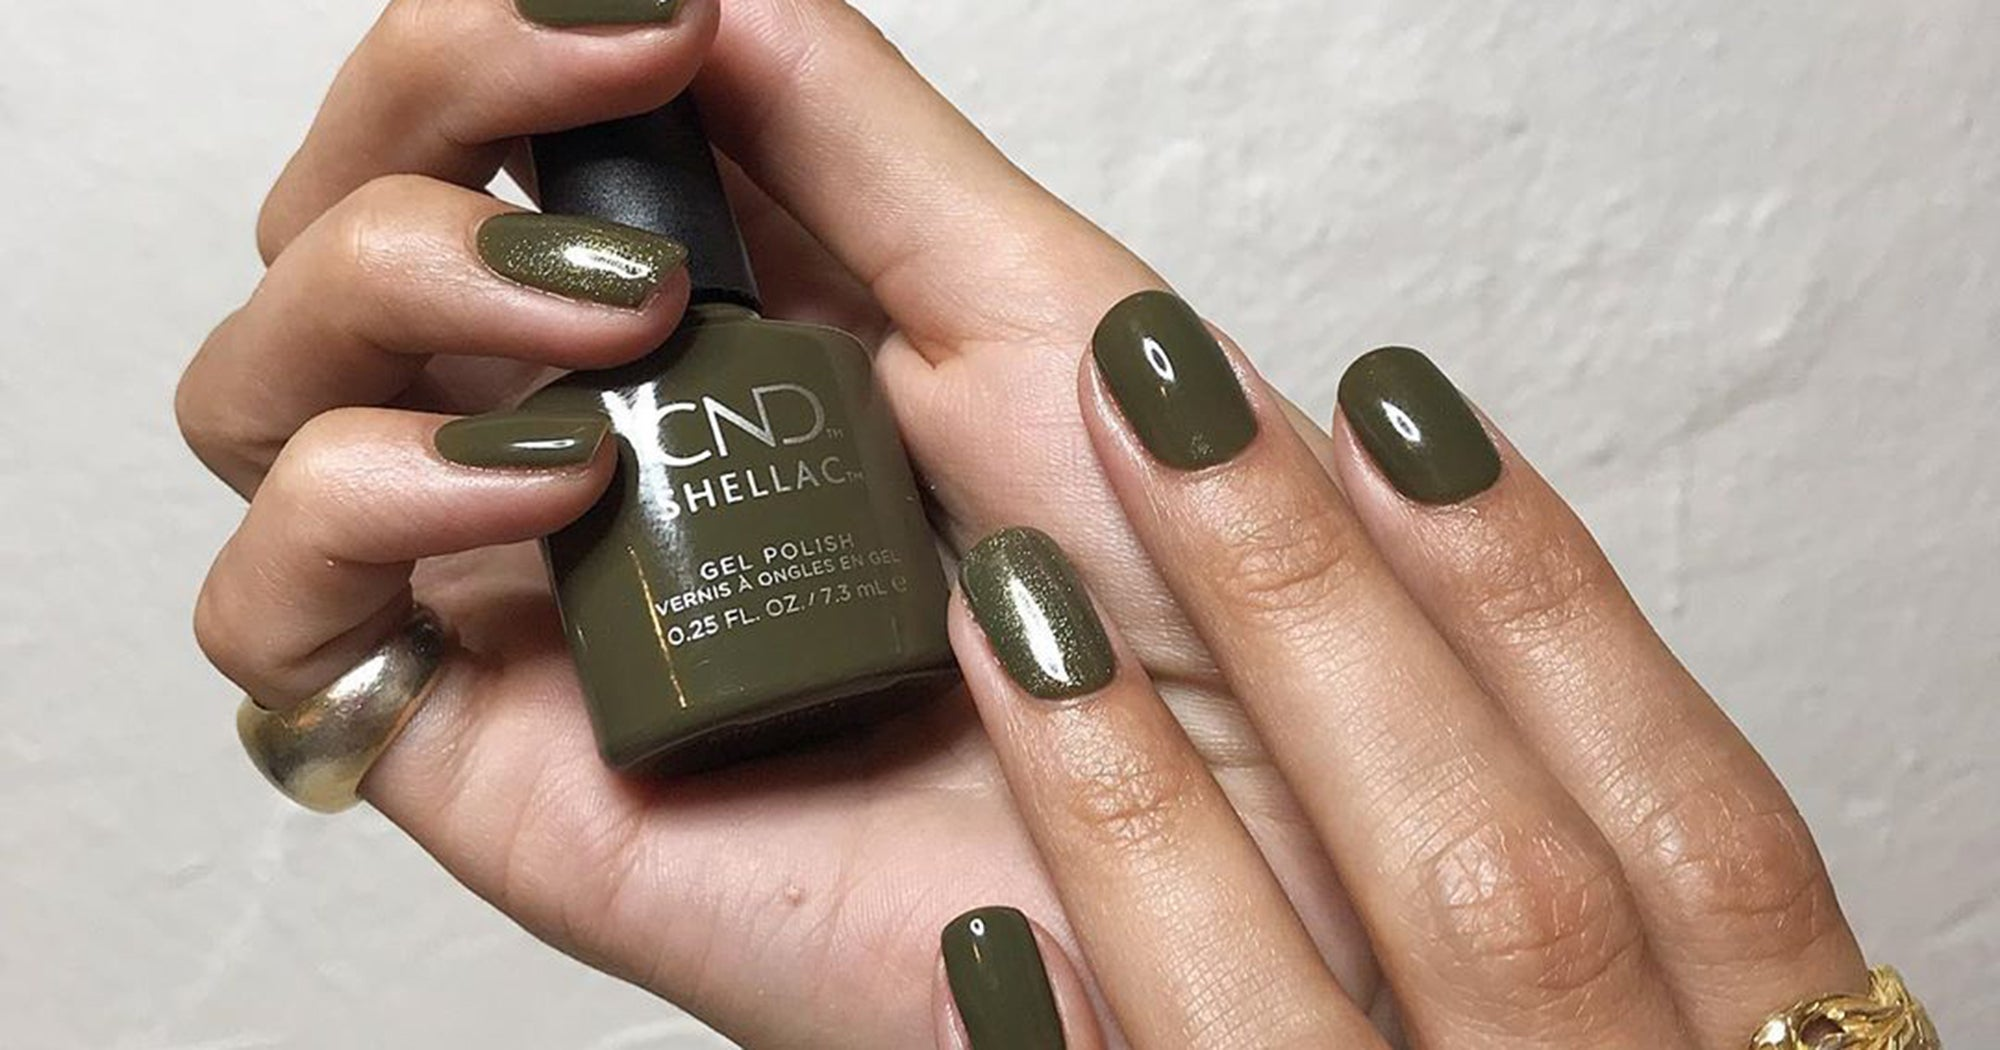 Best Olive Green Nail Polish For Trendy Fall Manicure